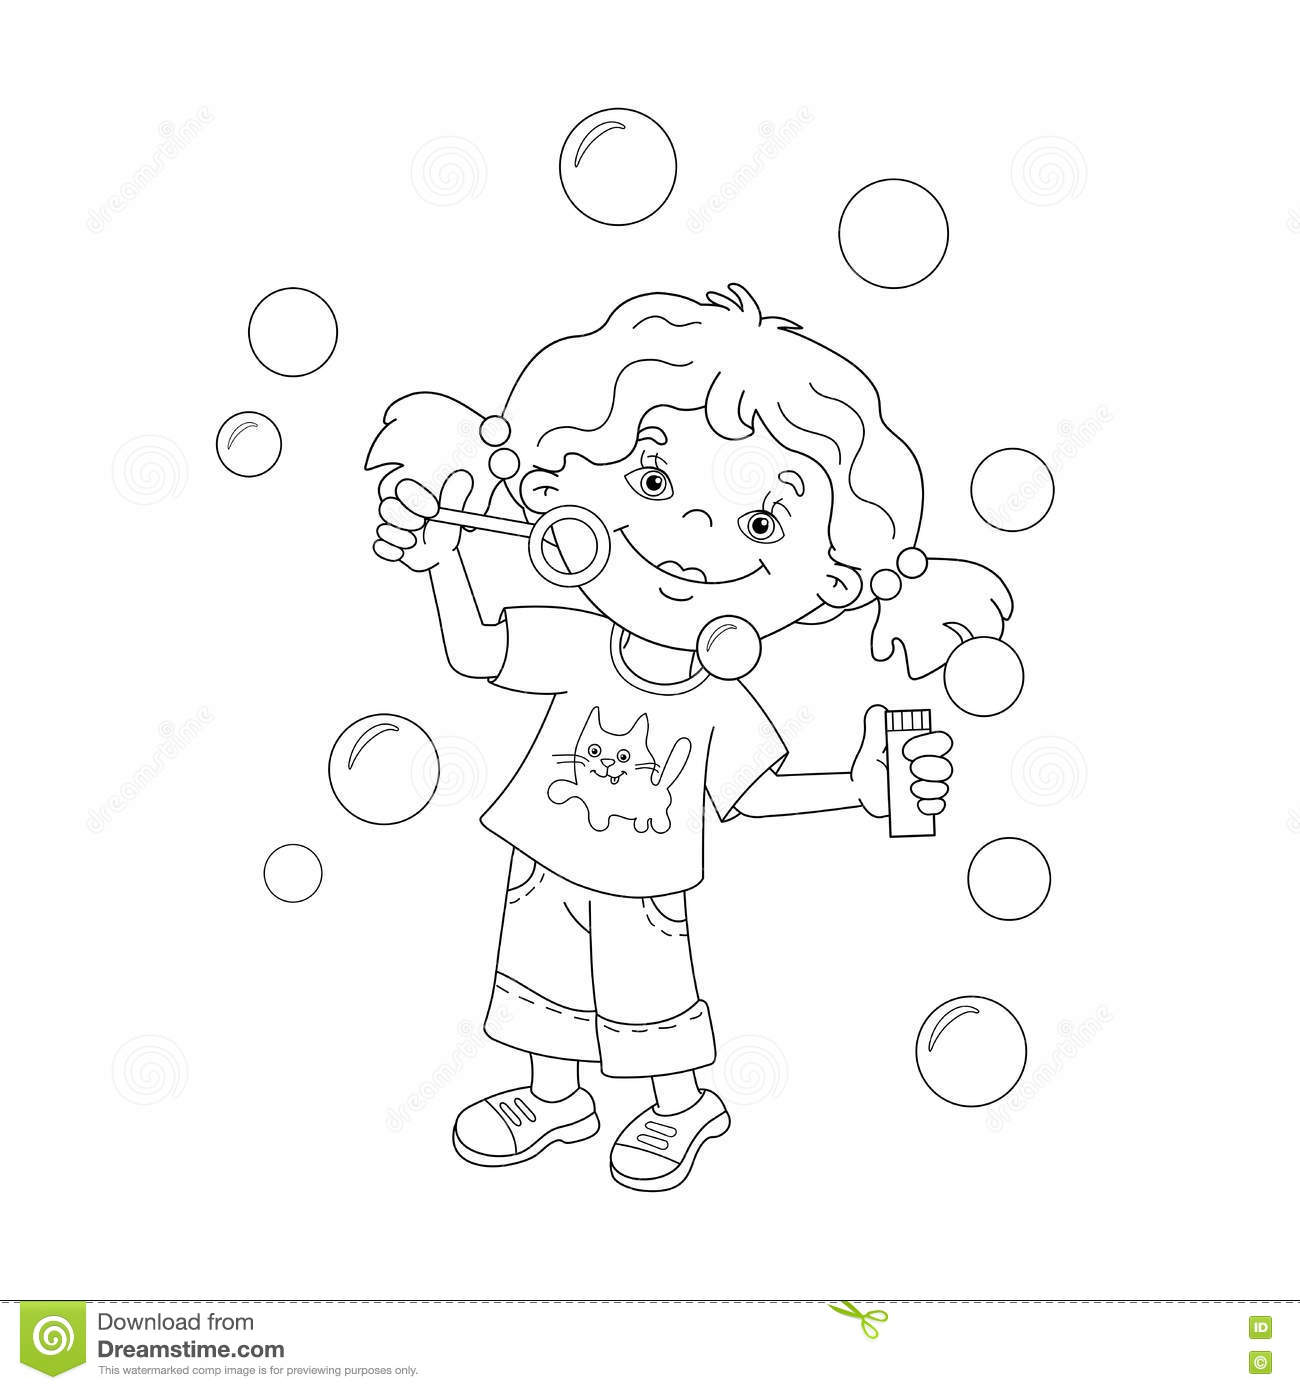 coloring page outline of cartoon blowing soap bubbles